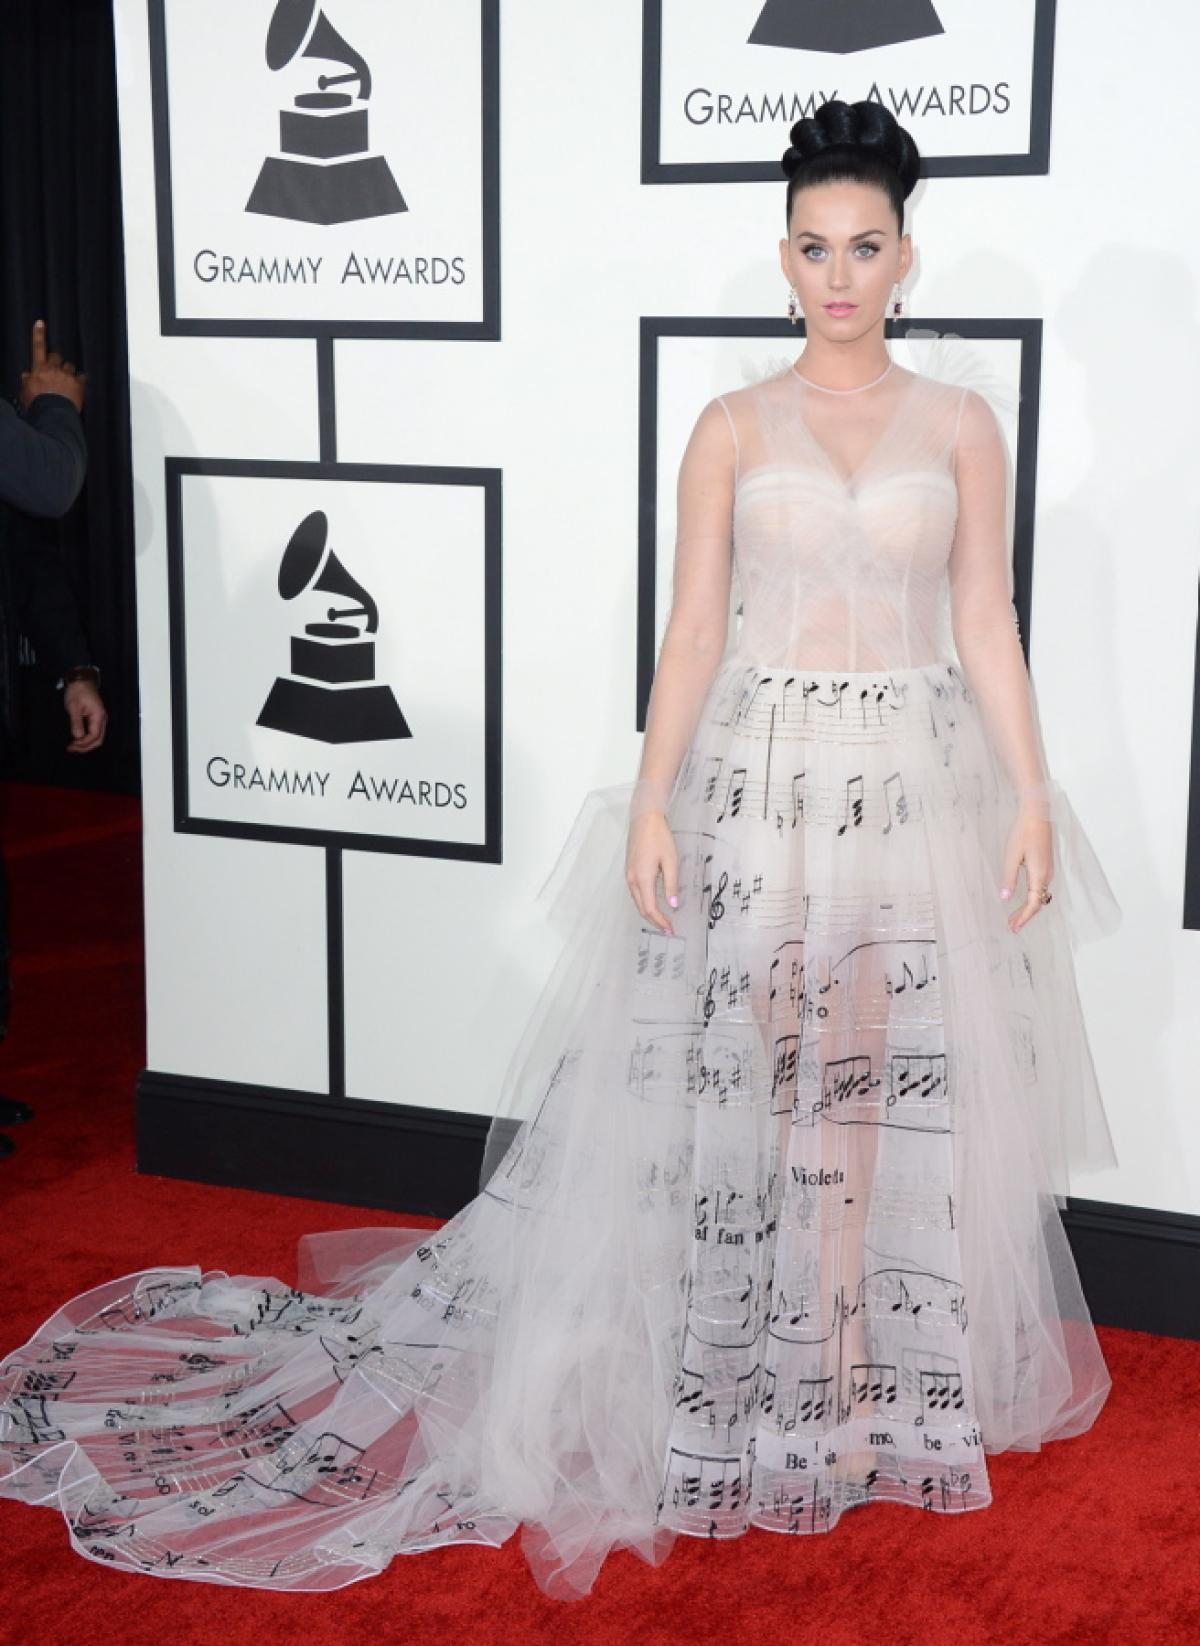 katy-perry grammy awards